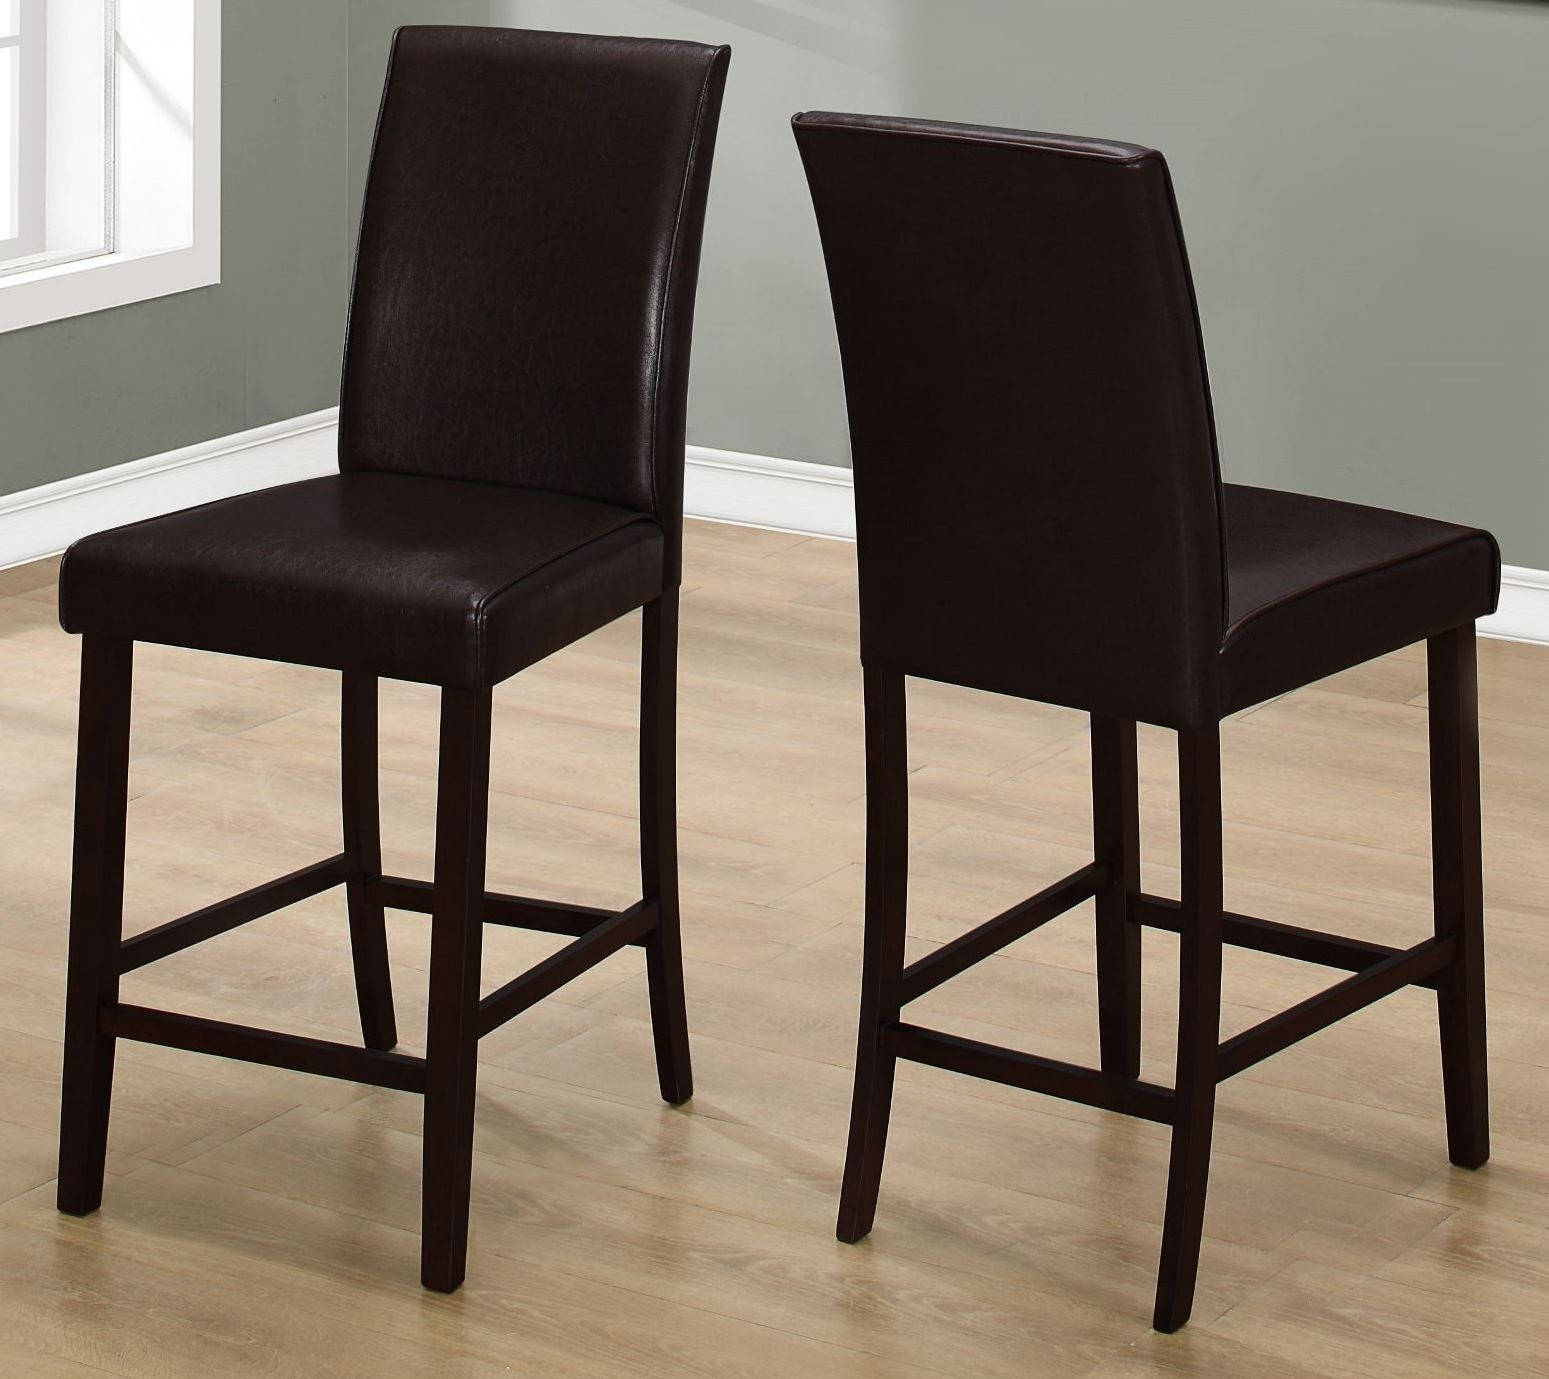 tall dining chairs where can i buy chair covers brown leather counter height set of 2 from